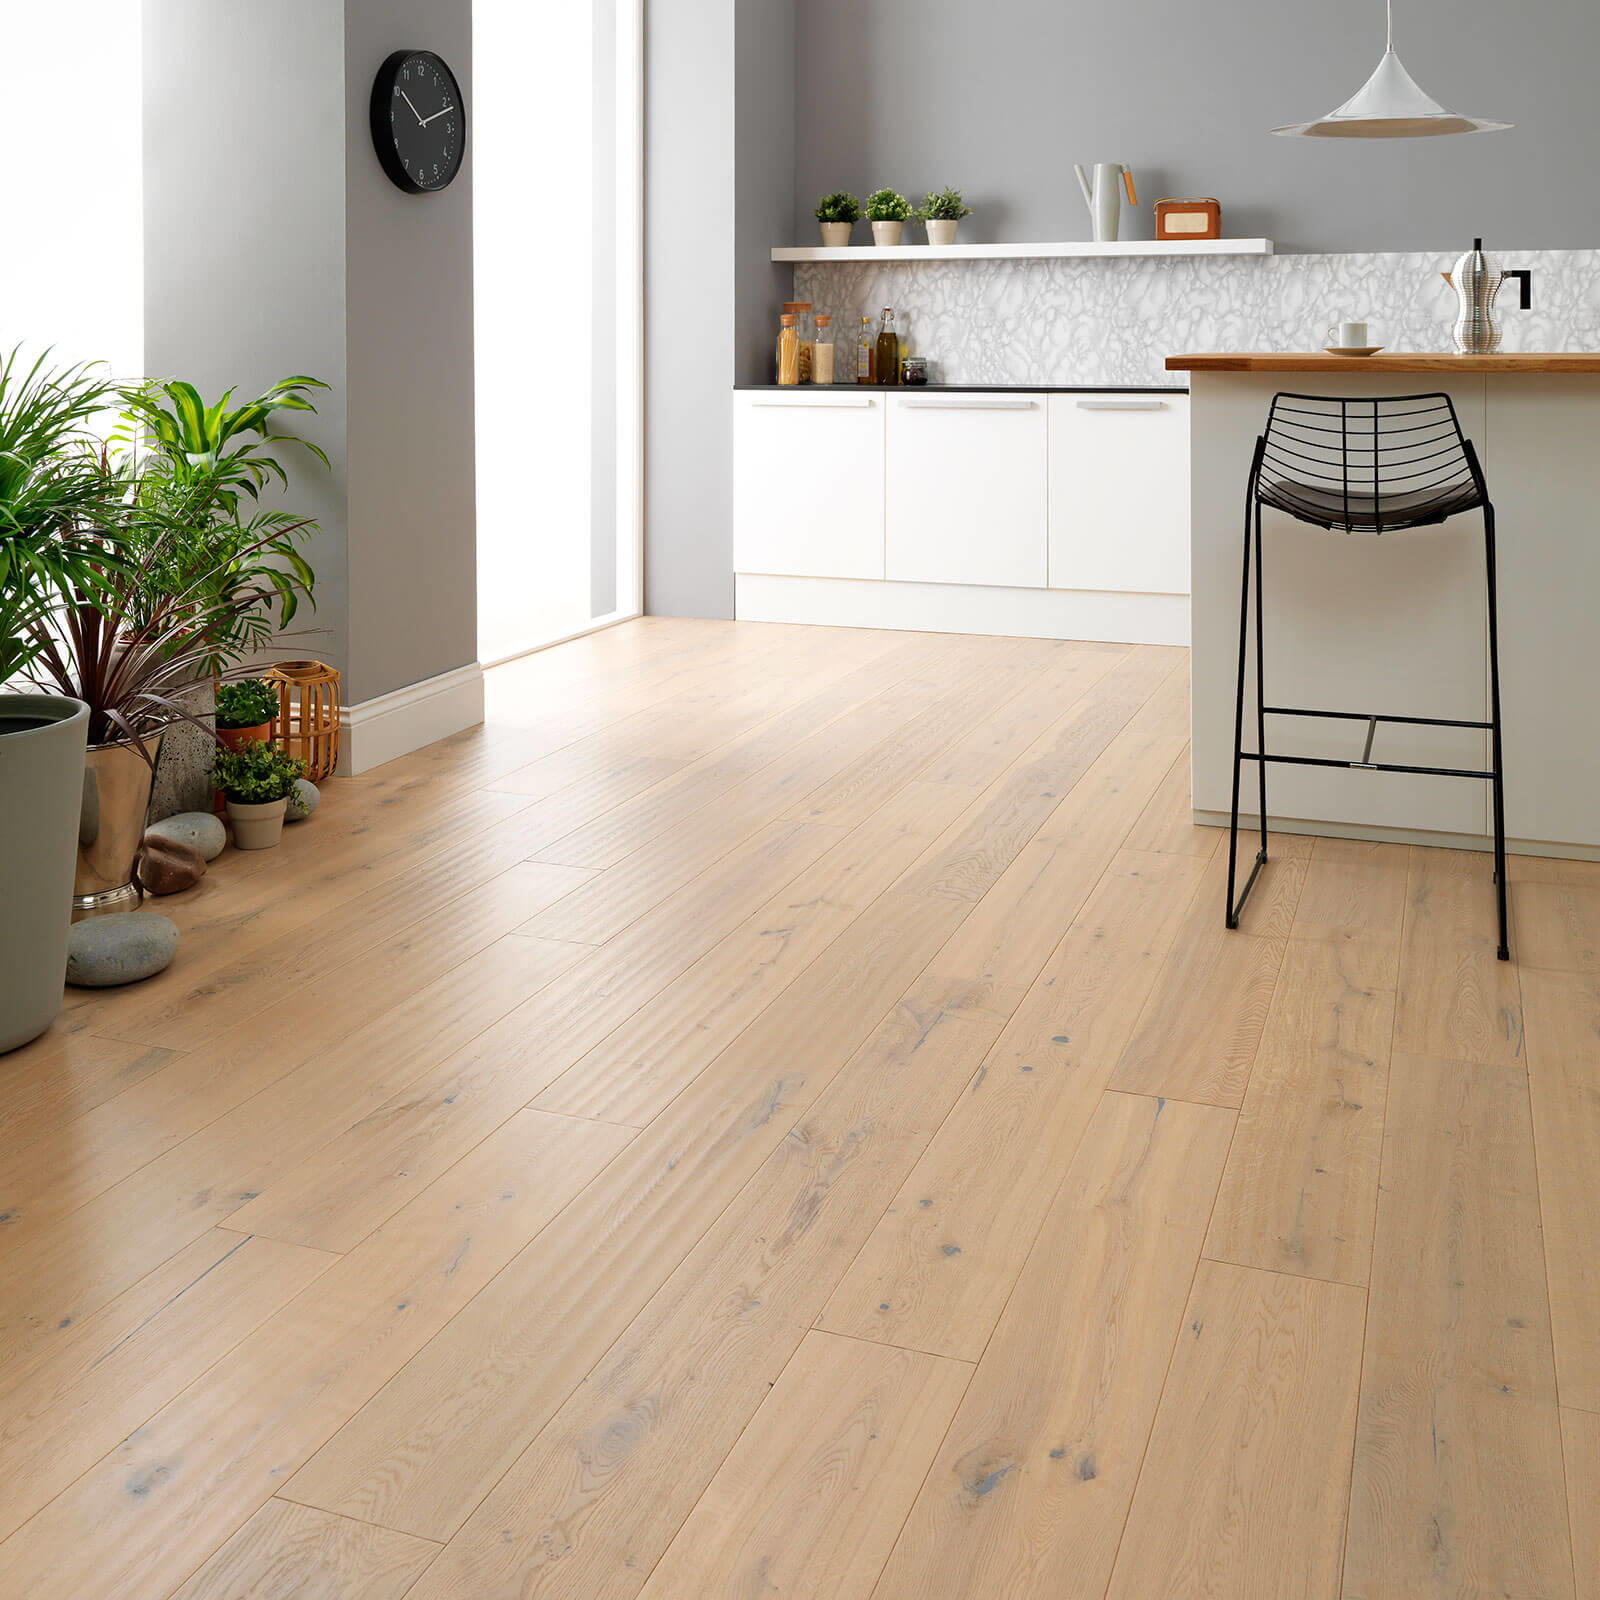 Woodpecker Berkeley Distressed White Oak Oiled 38-BOA-006 Engineered Wood Flooring